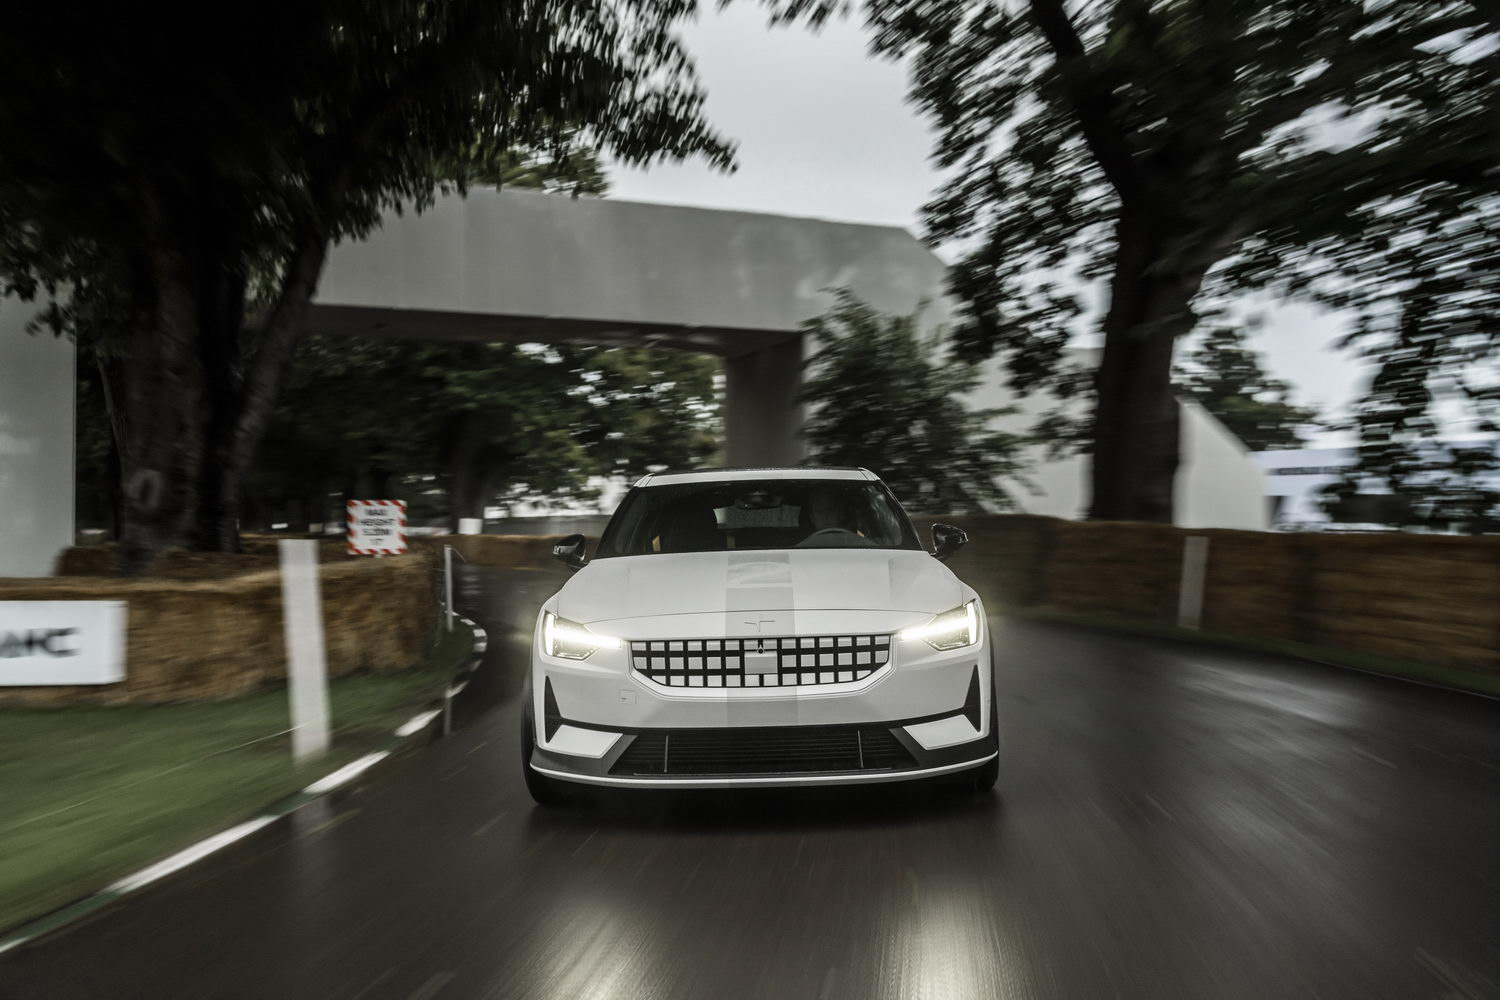 Polestar mixes business with pleasure in experimental model. Image by Polestar.